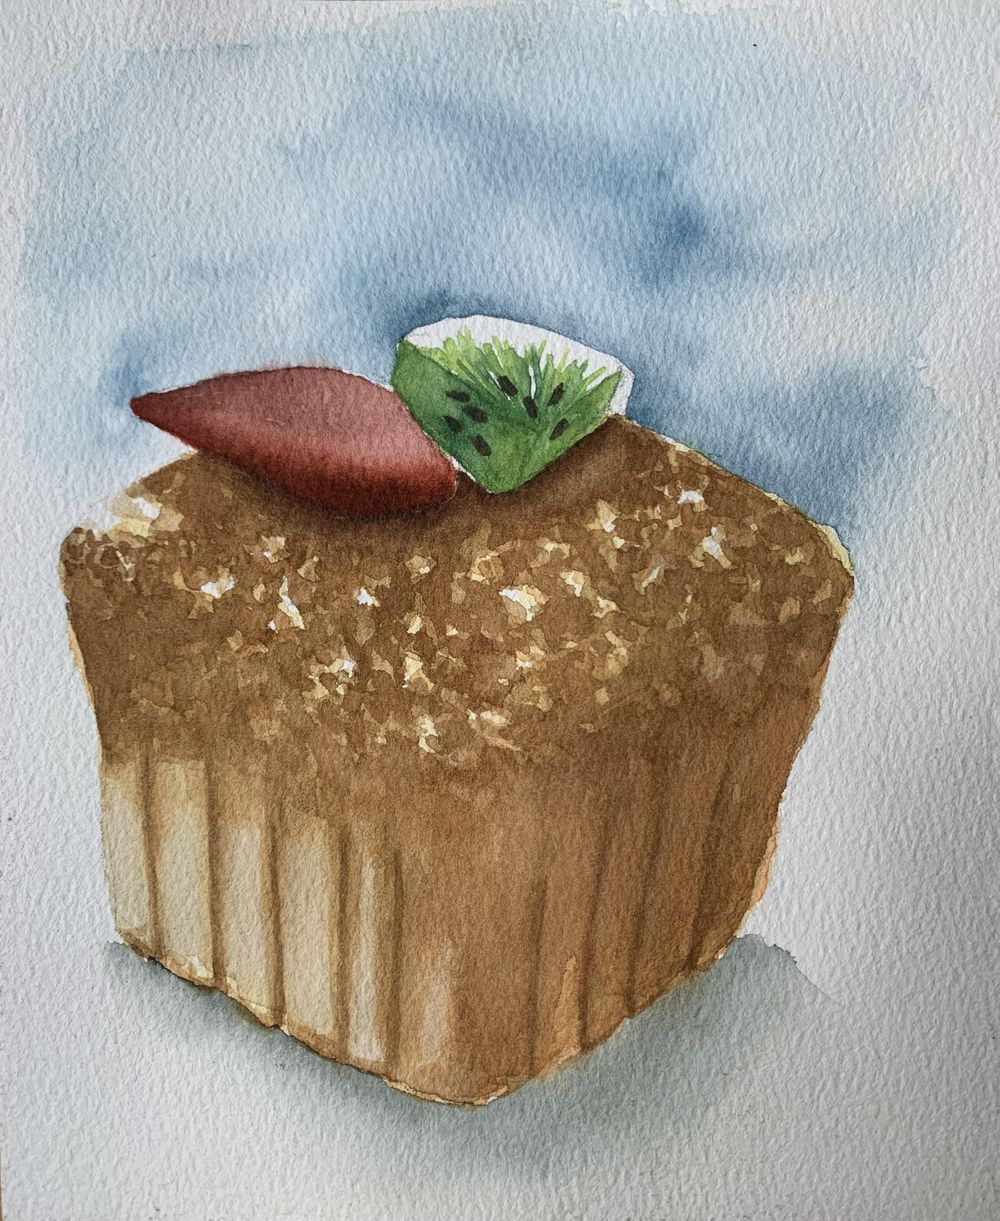 Dessert try # 3 - image 1 - student project